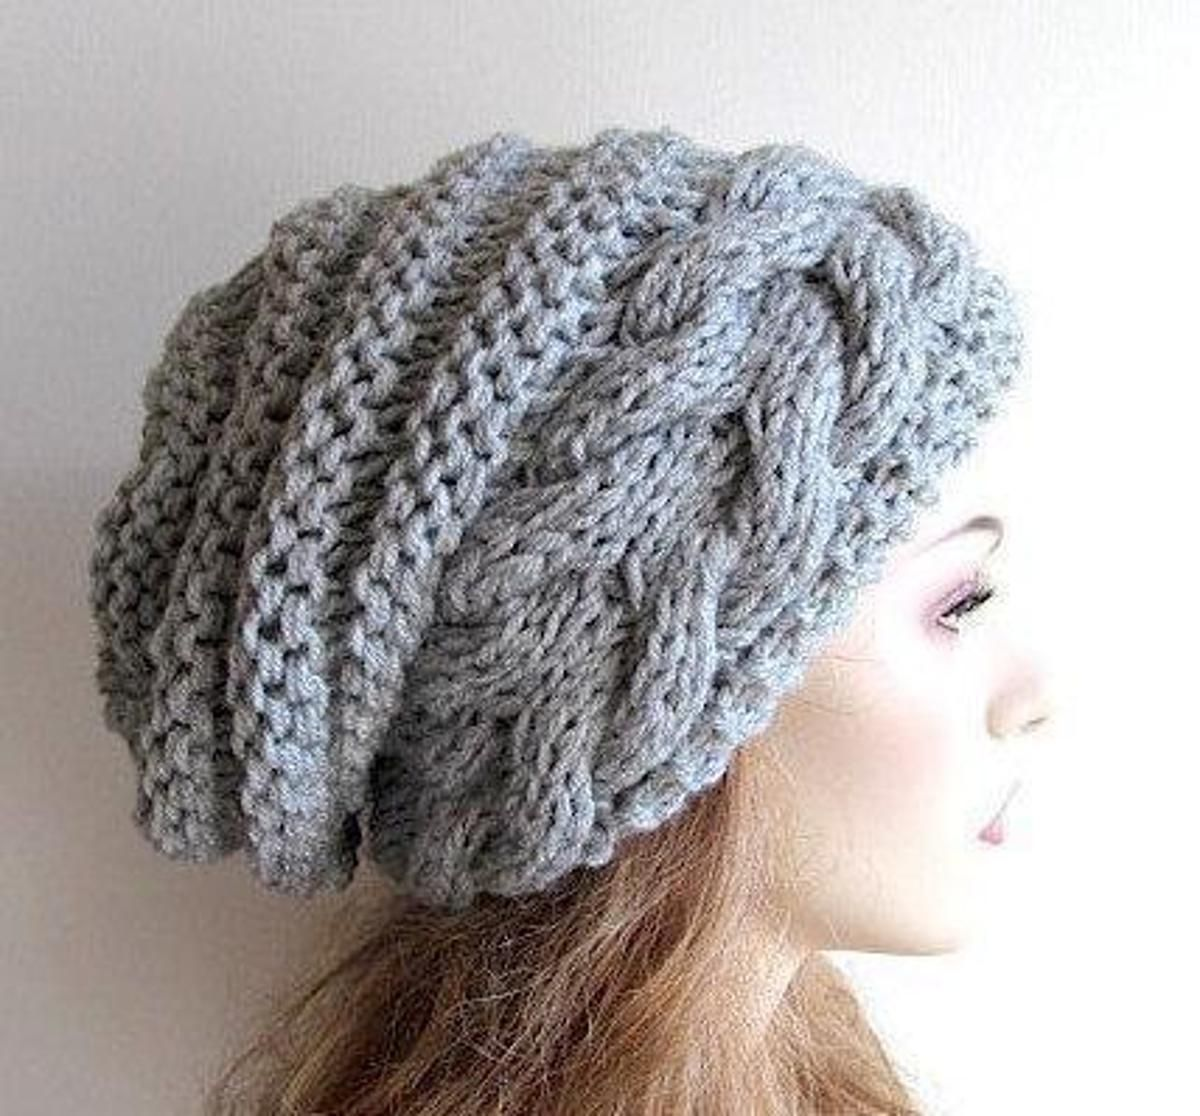 Braided cable beehive hat pattern beehive patterns and slouch hats braided cable beehive hat pattern bankloansurffo Choice Image